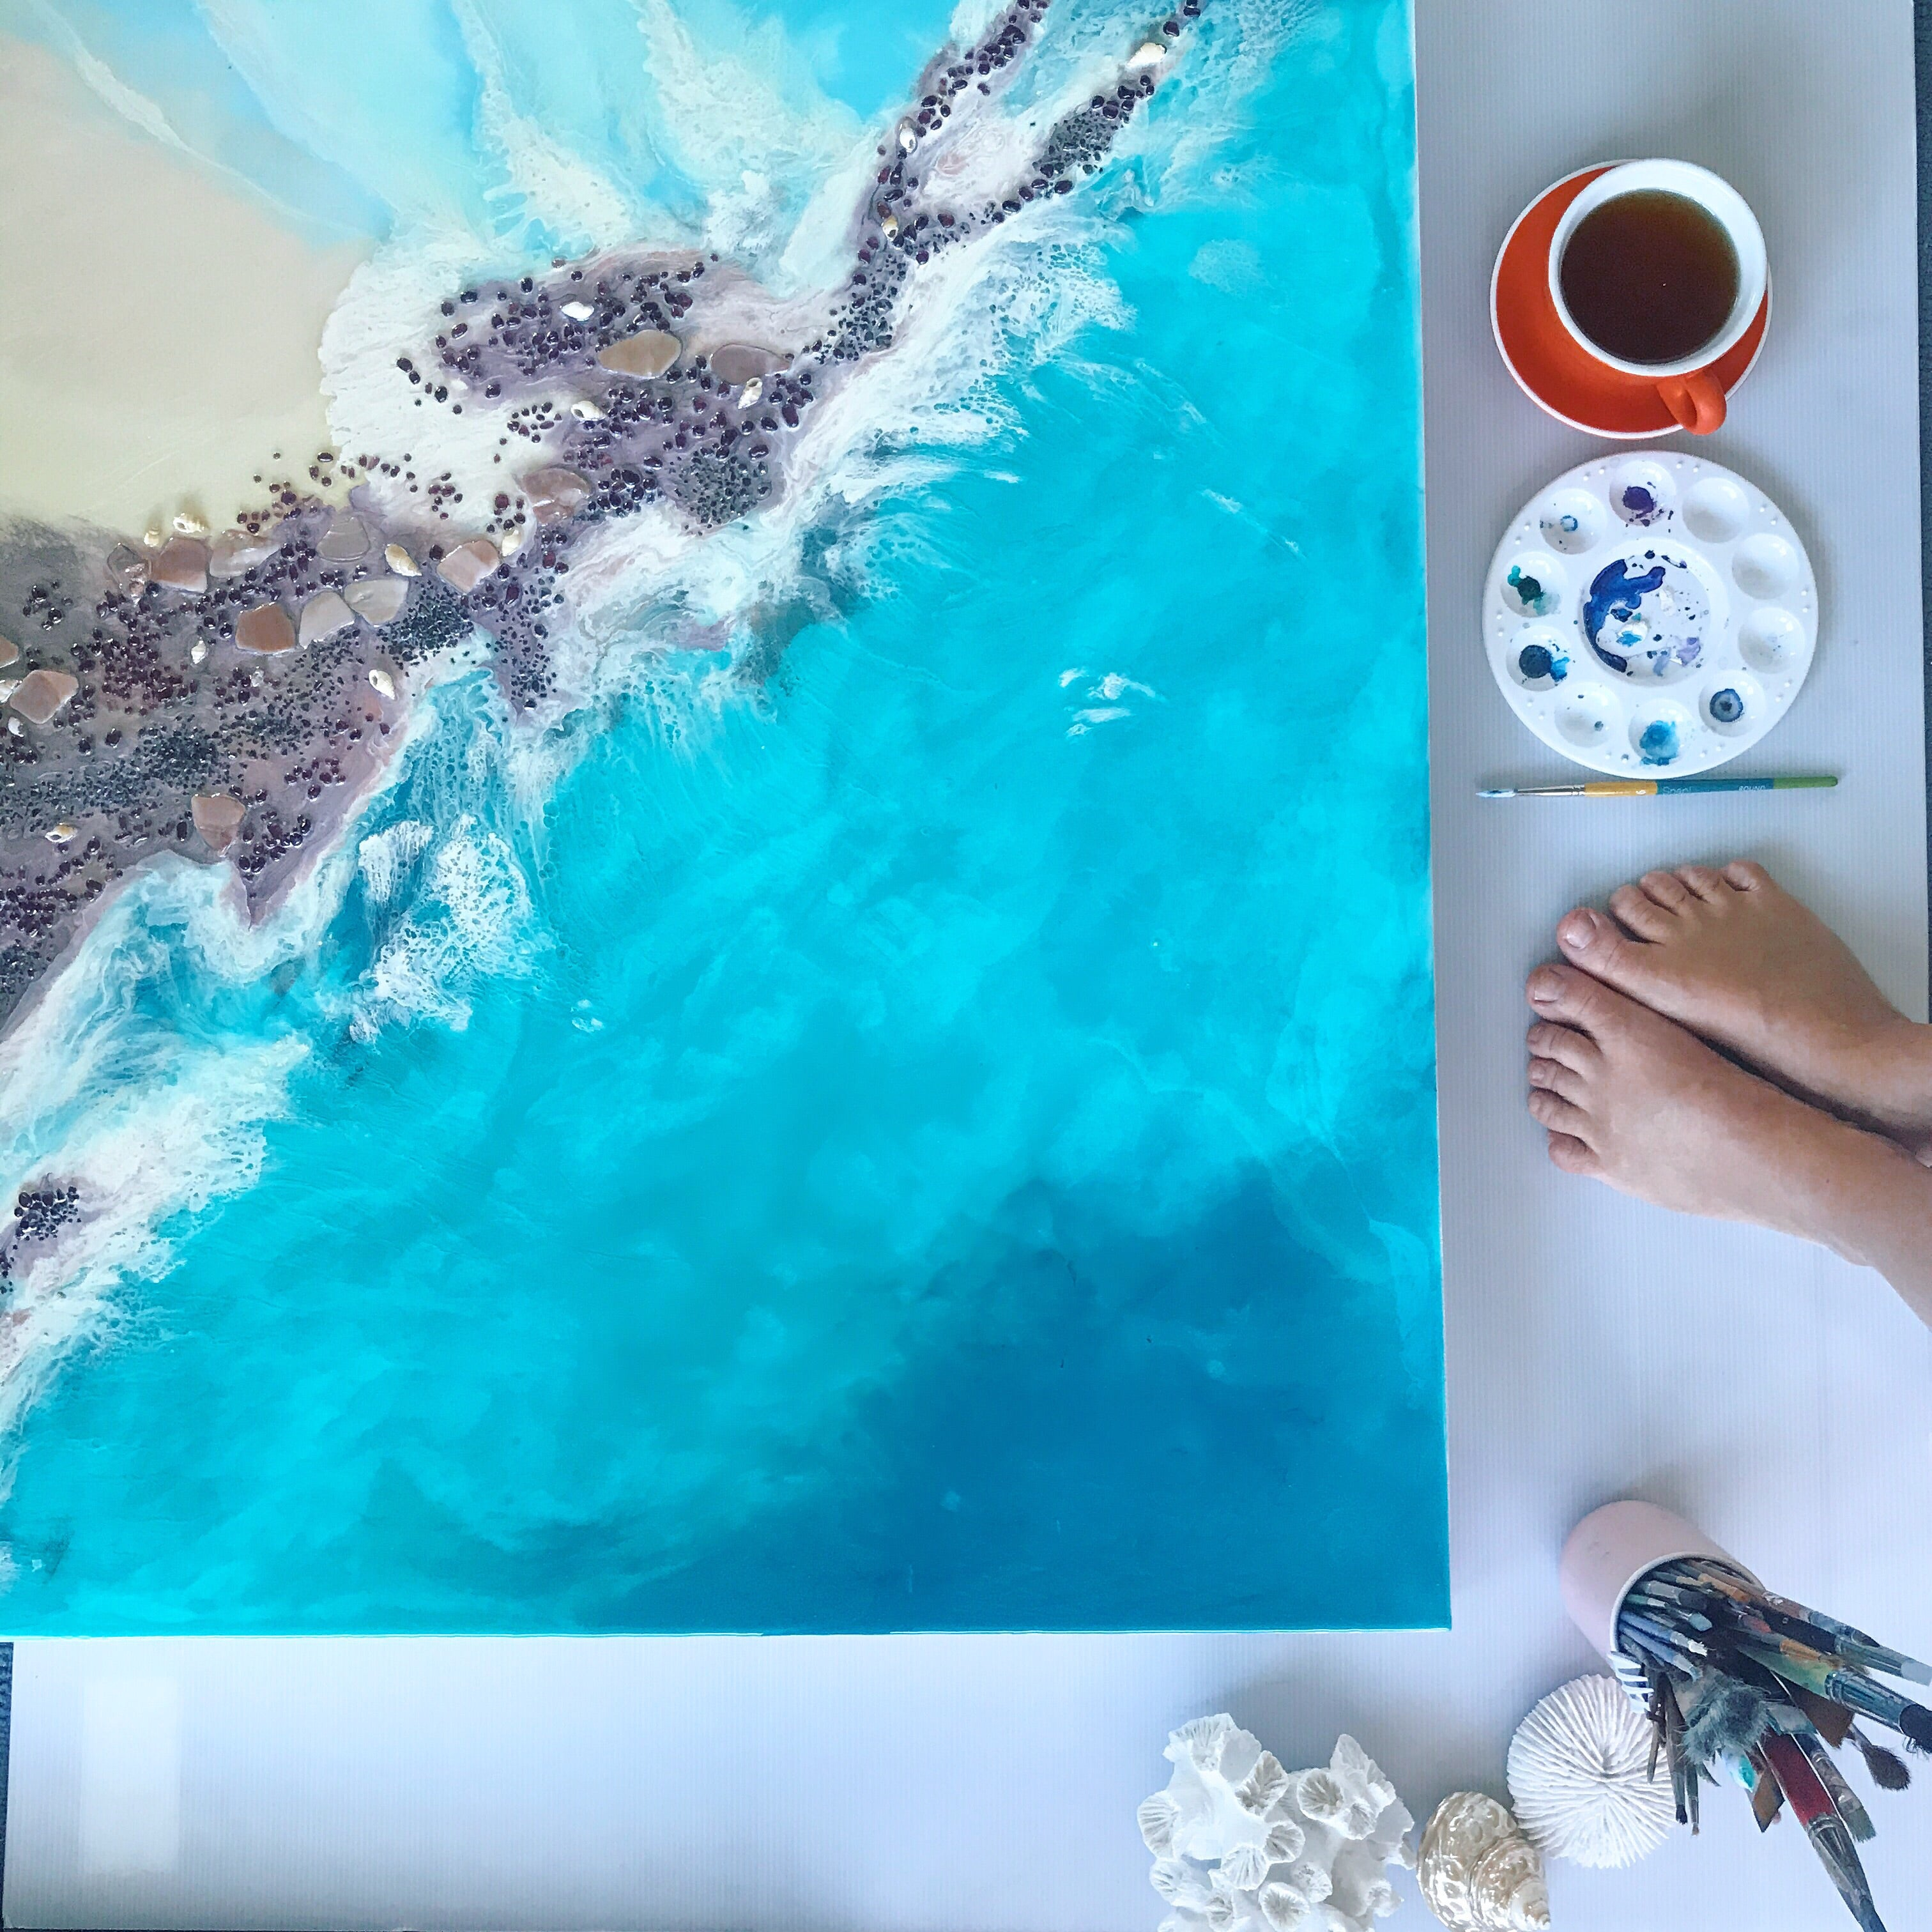 Teal Blue Ocean Wave. Byron Bay Magic. Original Artwork. Antuanelle 6 Magic with Mussels and Garnet. Abstract Seascape 90x90cm